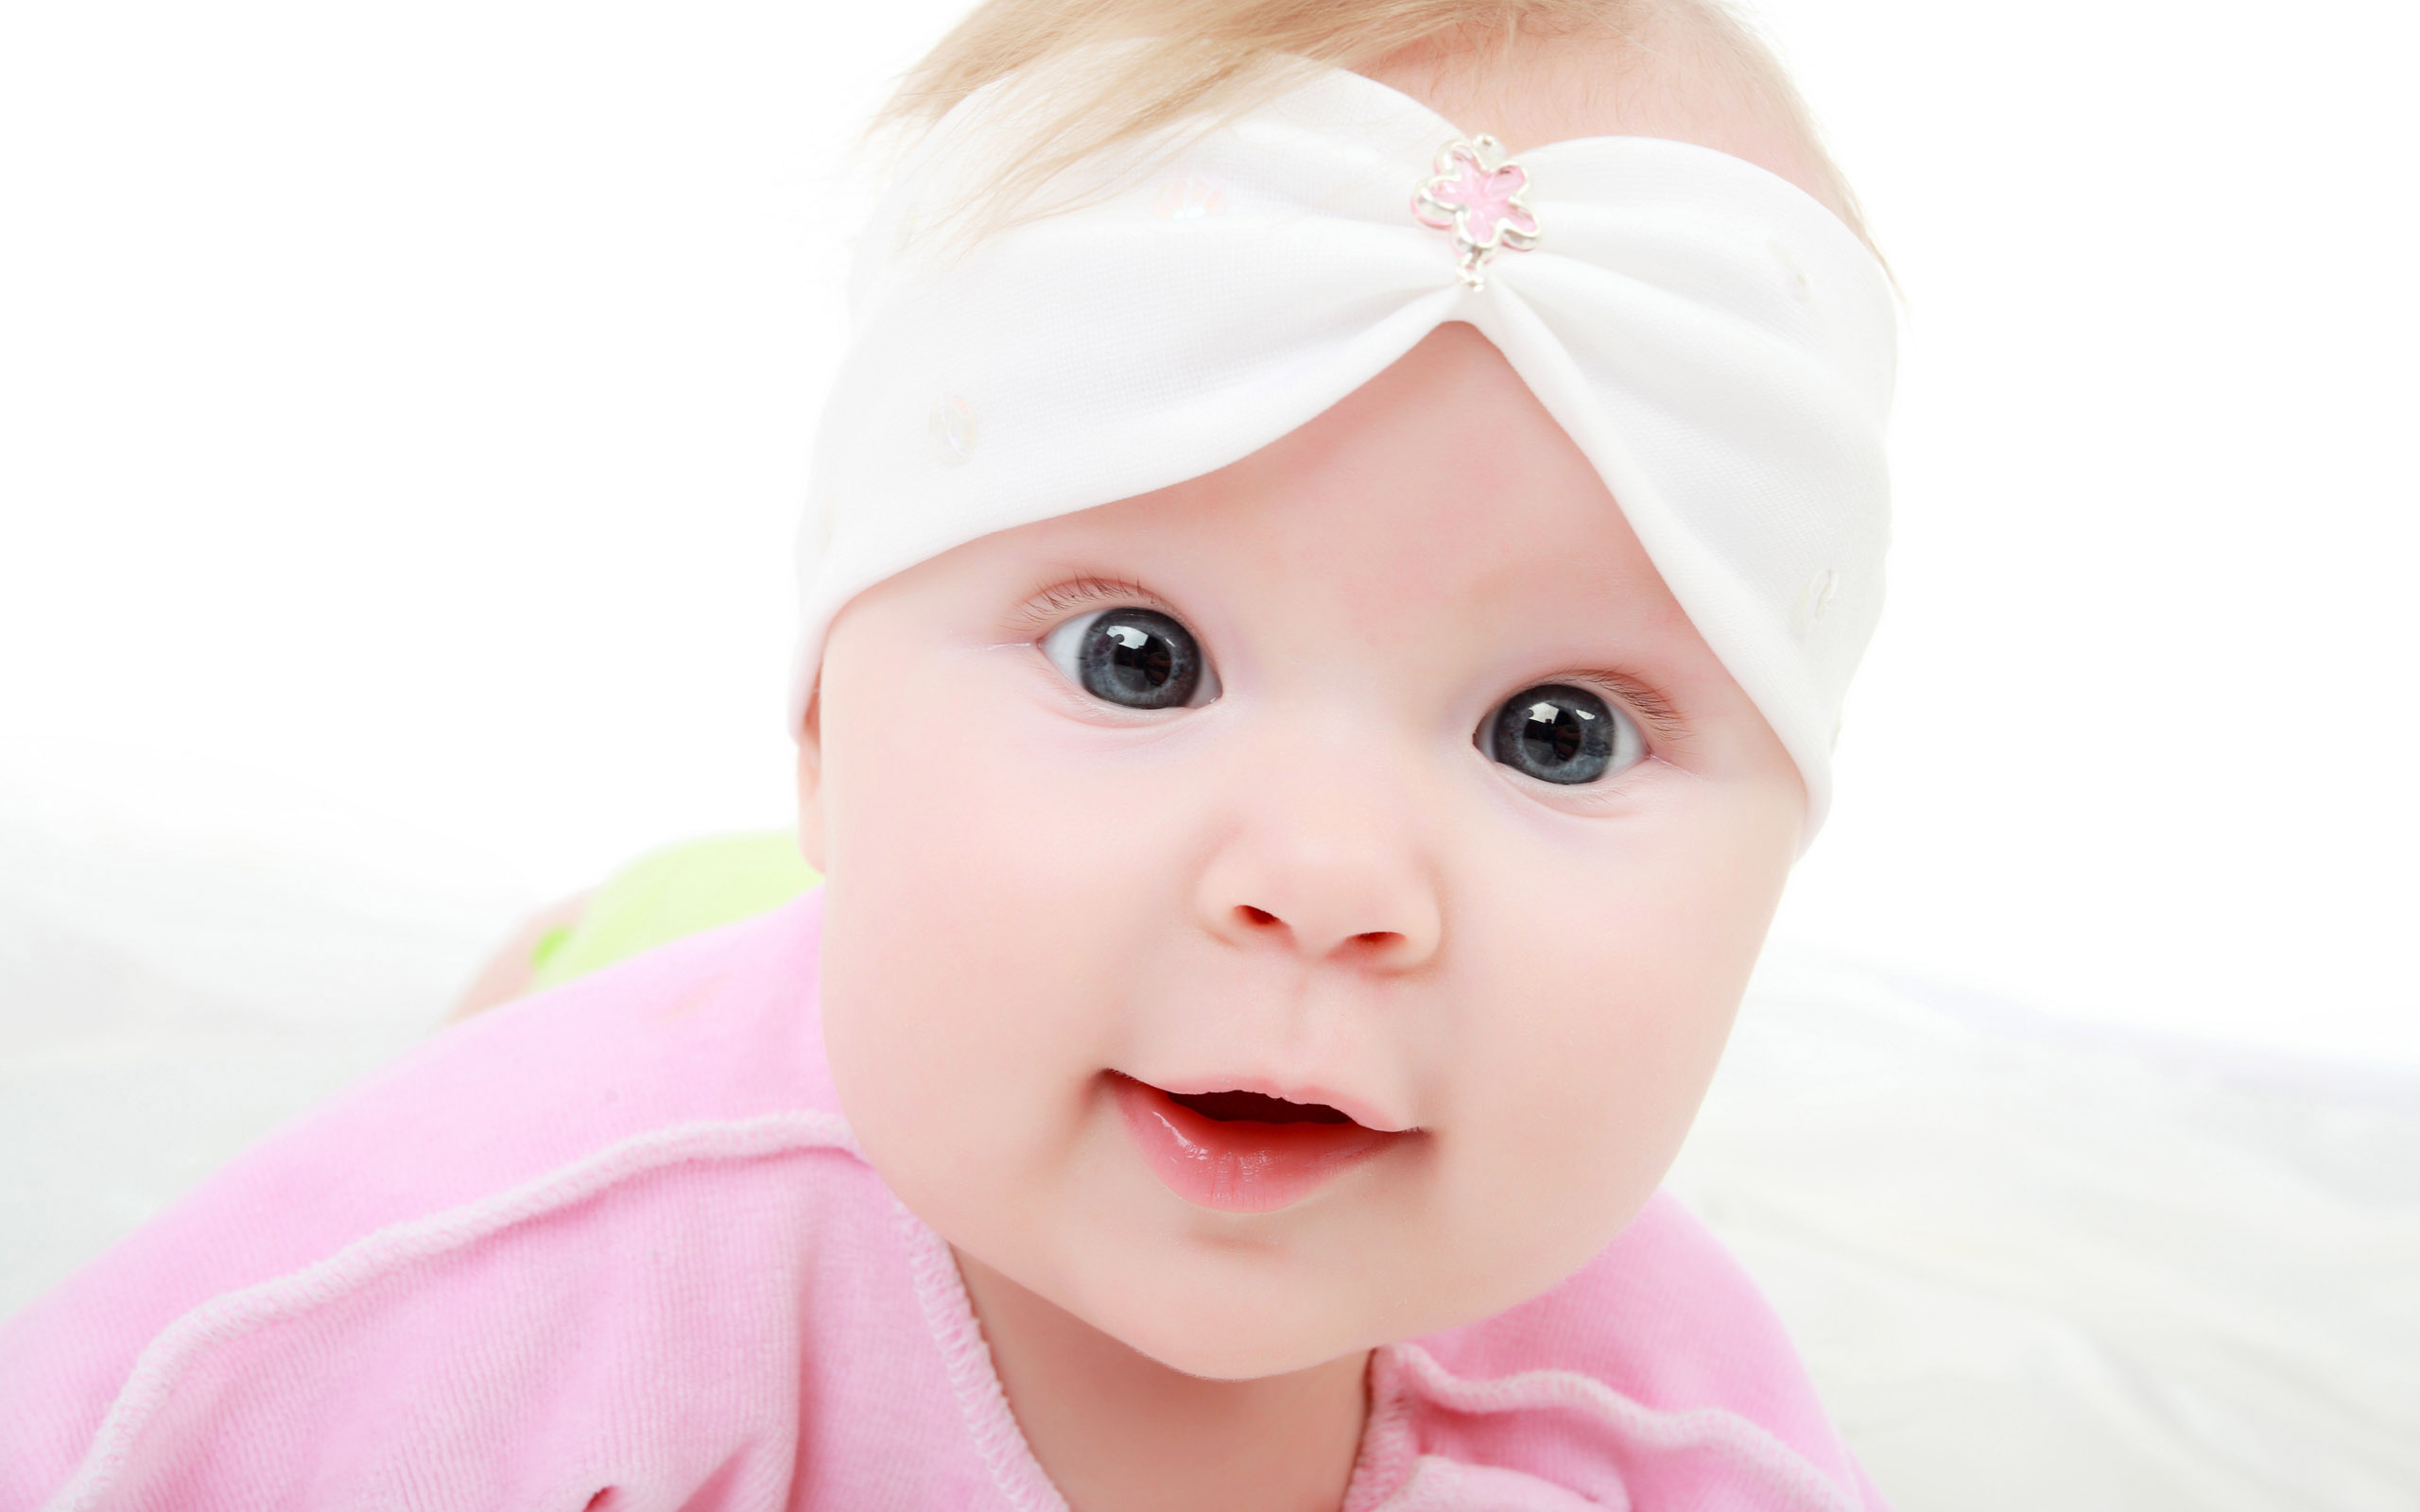 2560x1600px very cute baby wallpaper - wallpapersafari